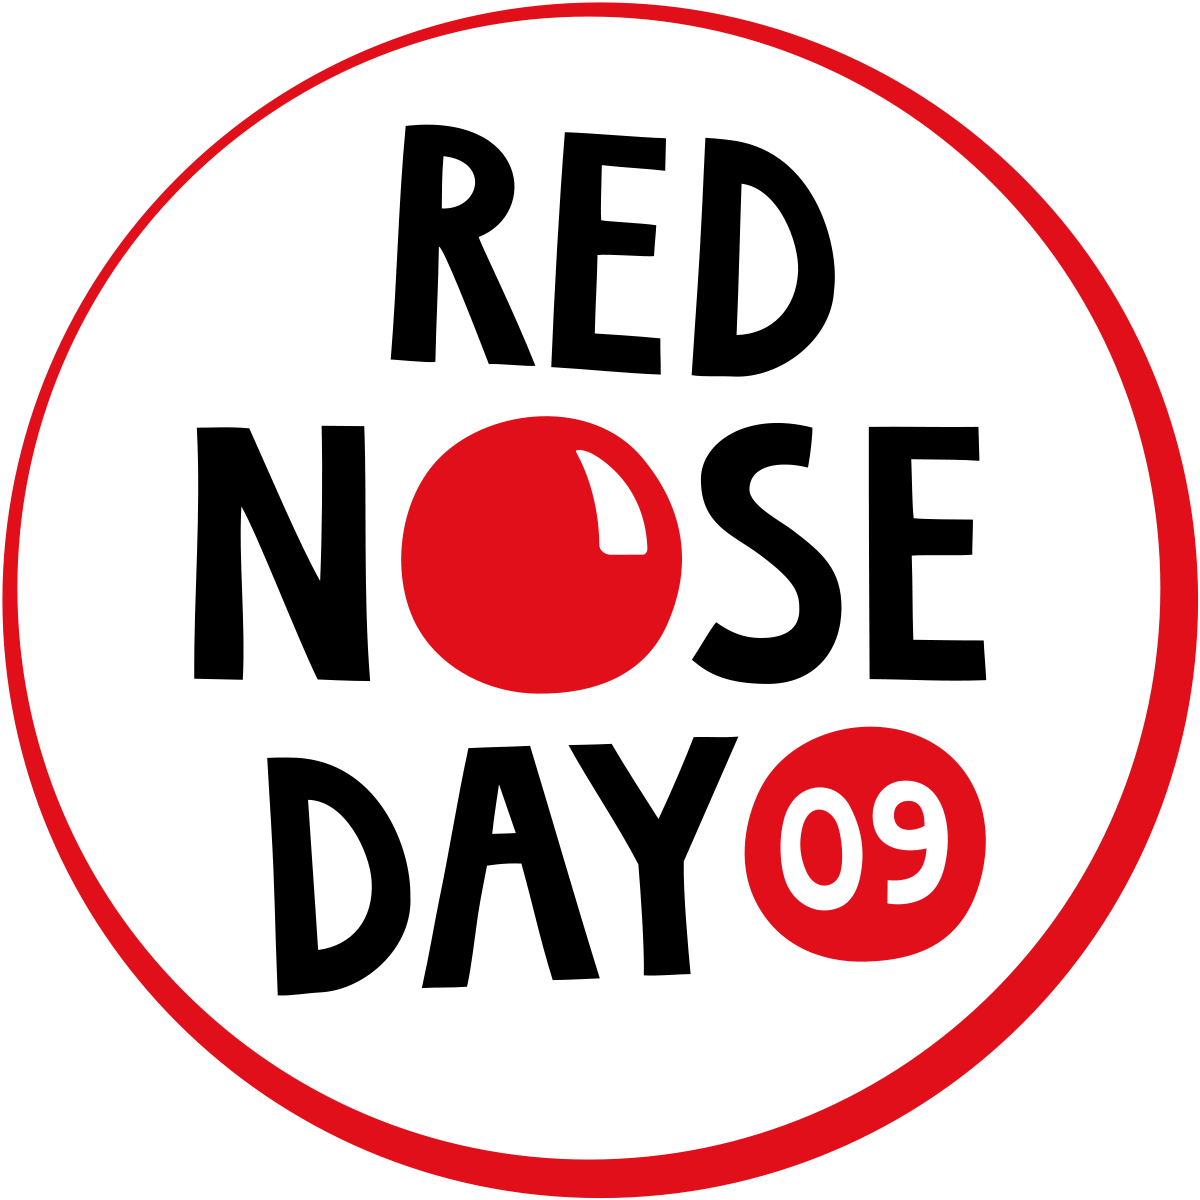 Red nose day png. Wikipedia